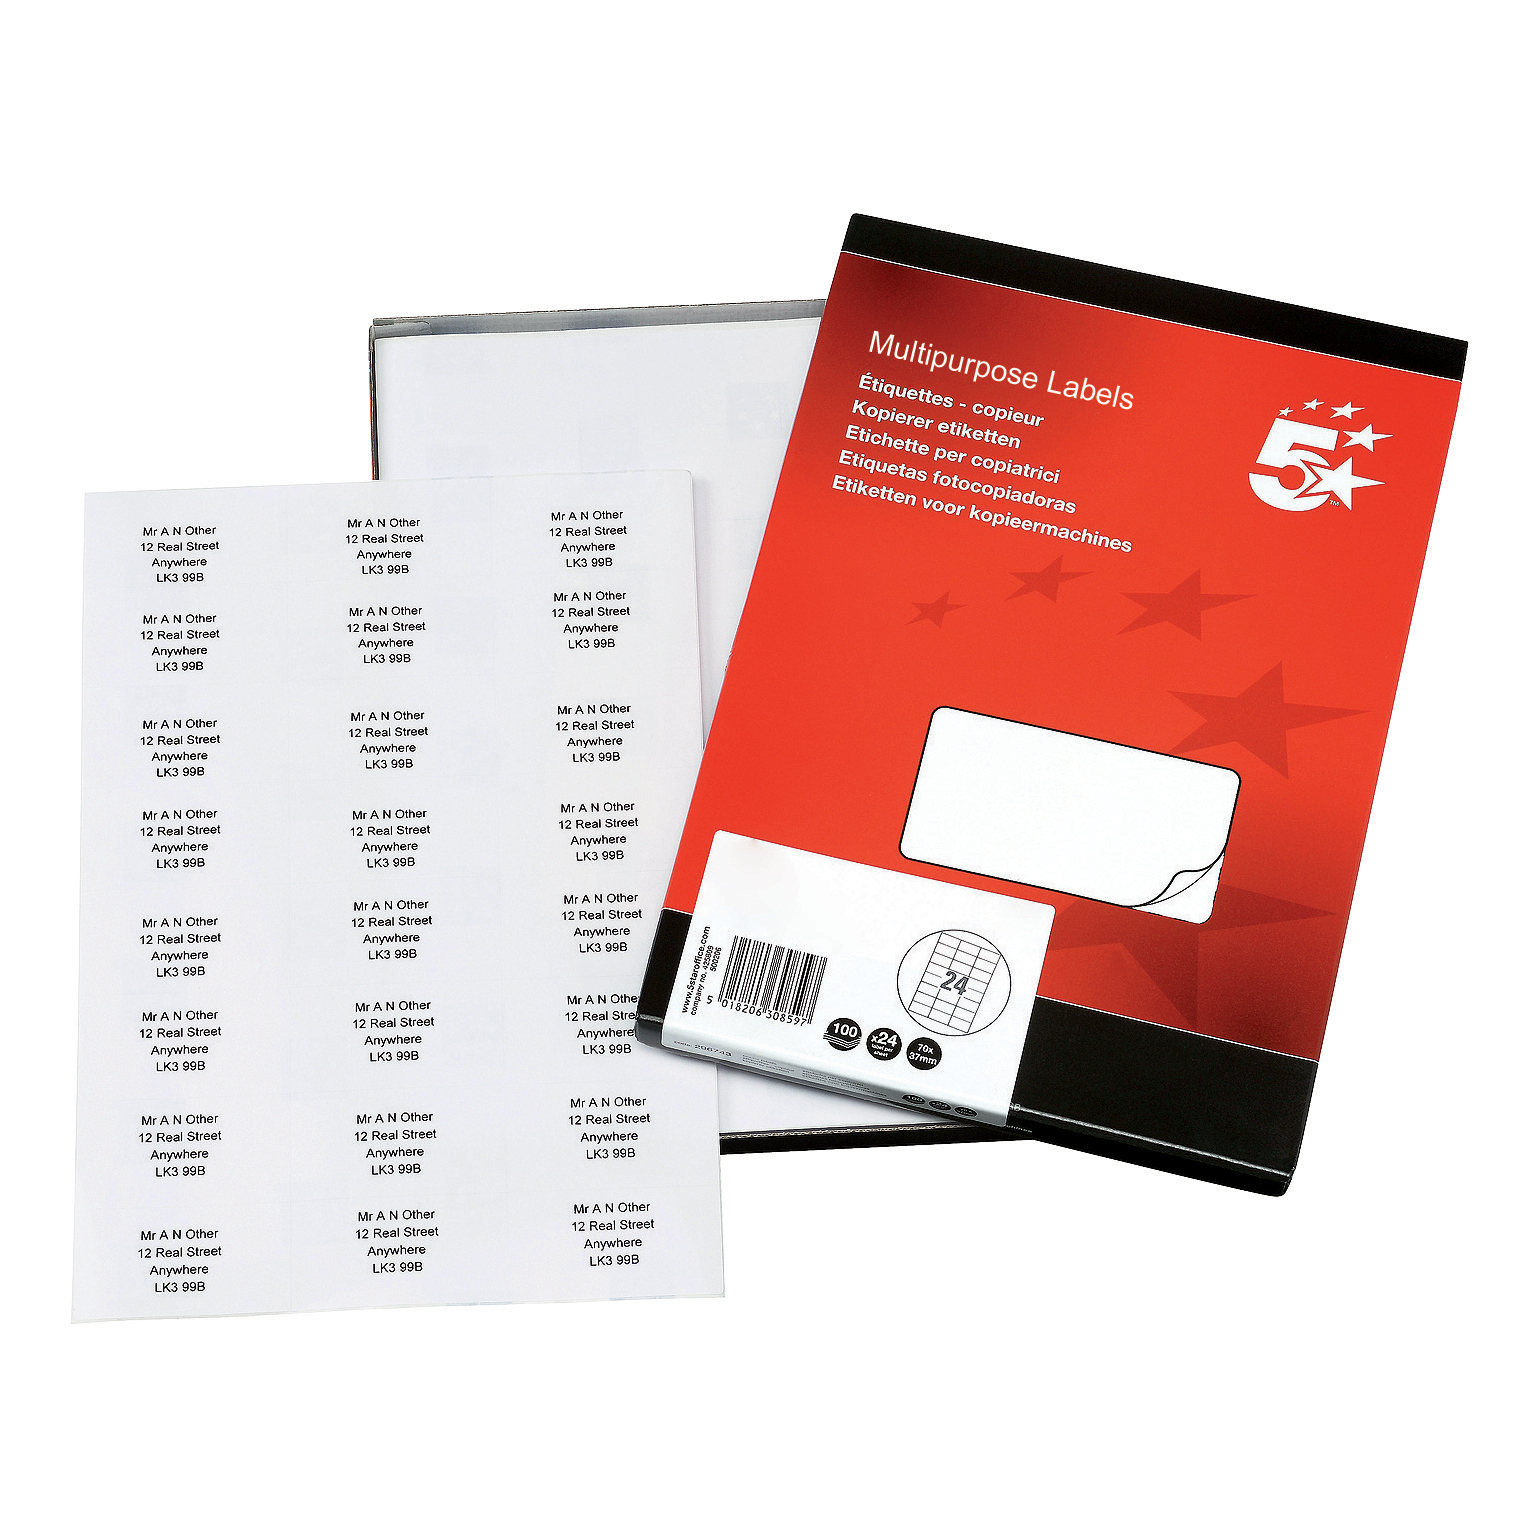 5 Star Office Multipurpose Labels Laser Copier Inkjet 24 per Sheet 70x37mm White [2400 Labels]